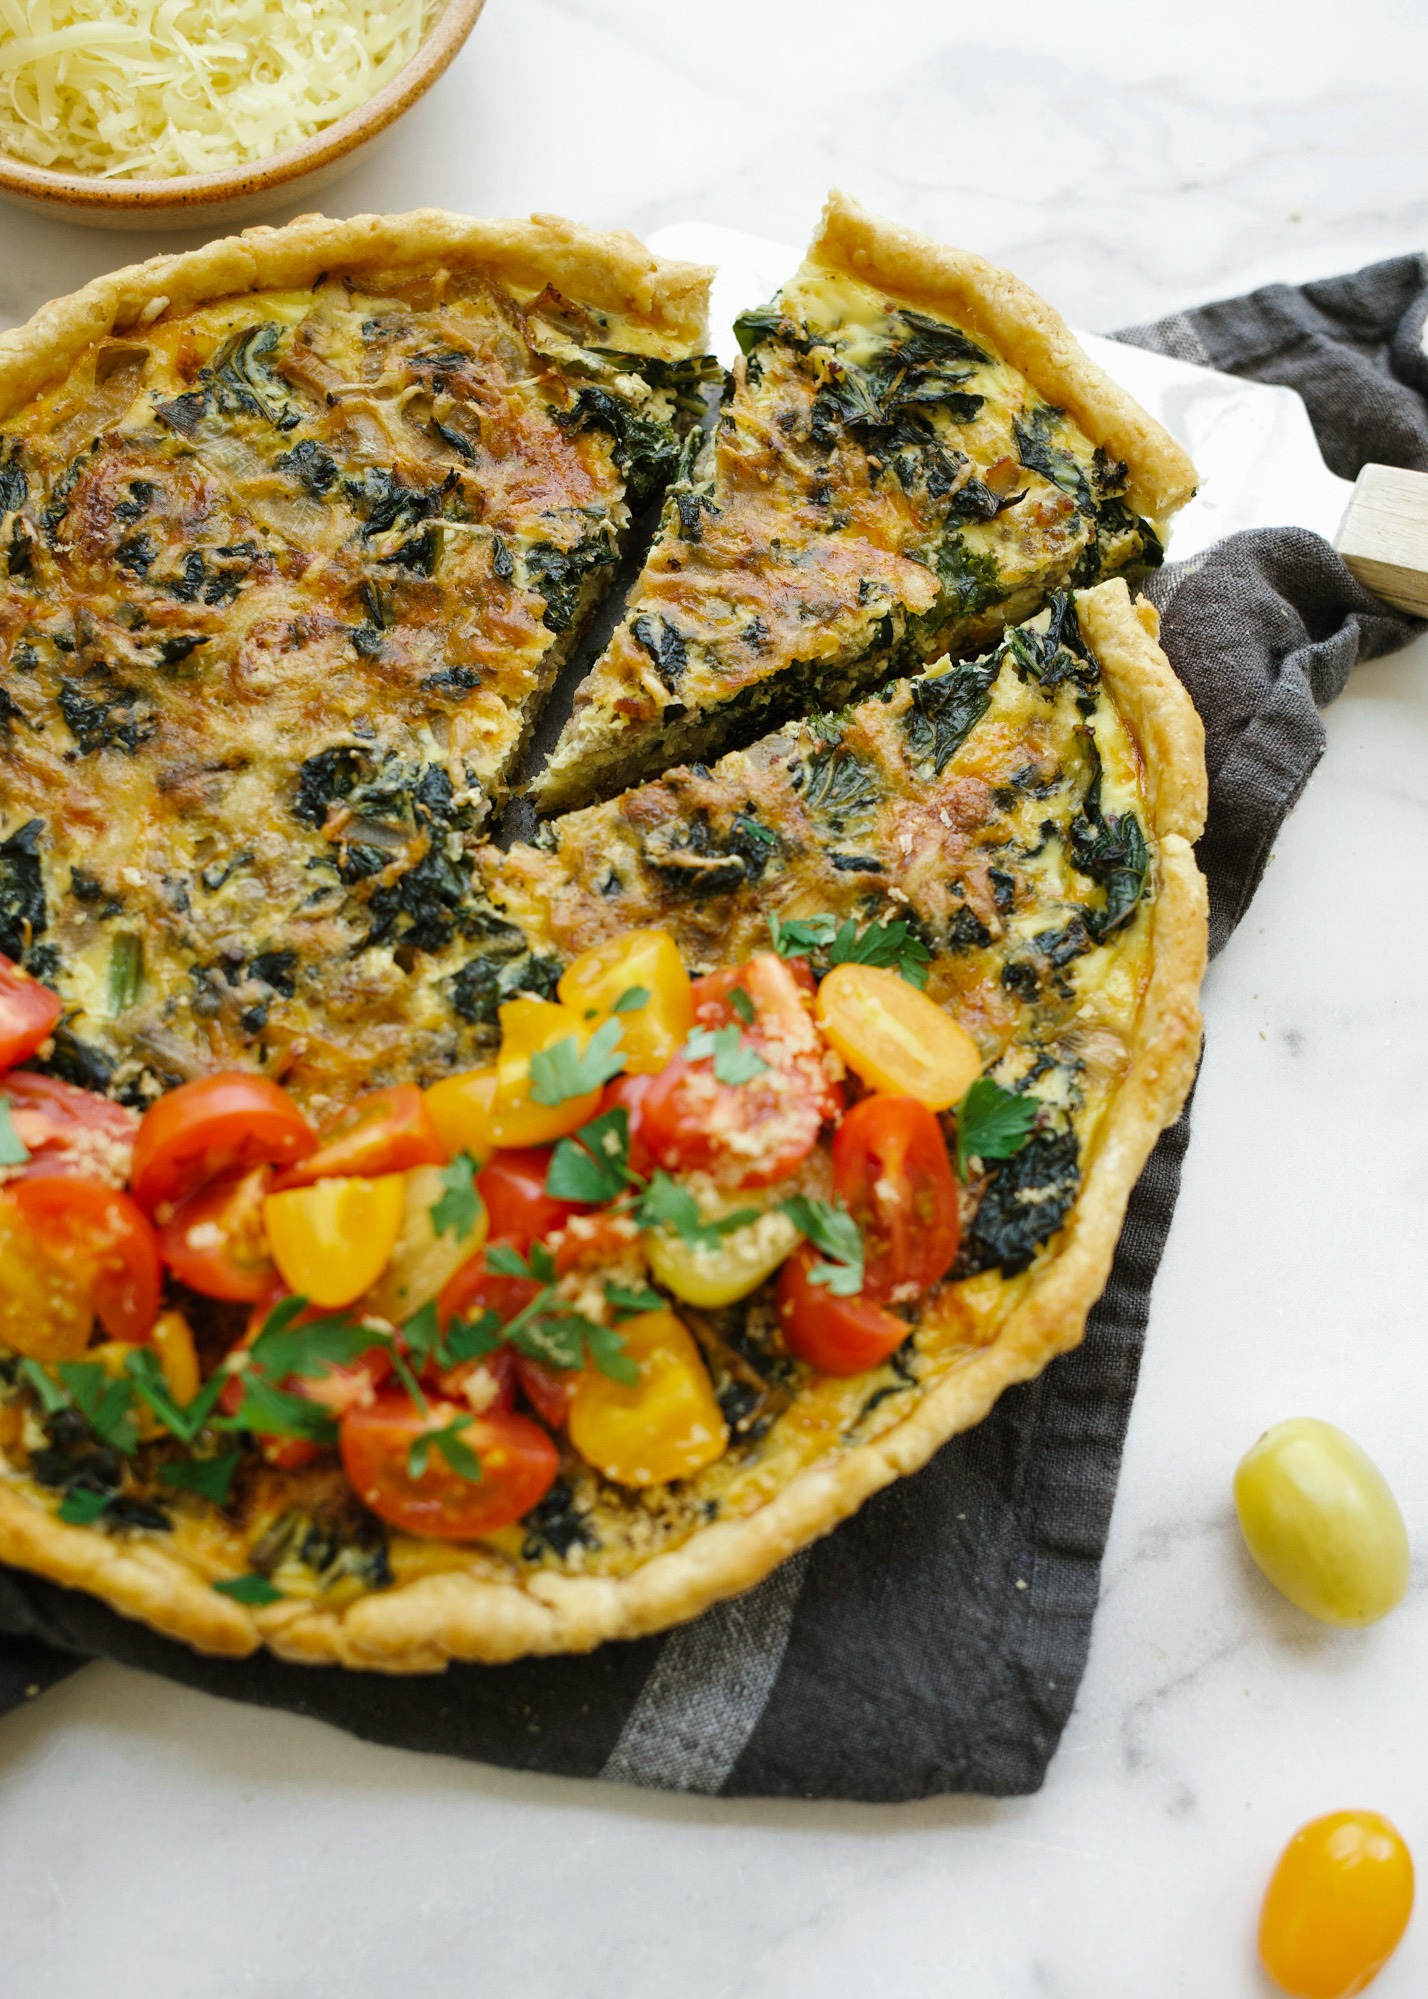 Kale Swiss and Sausage Quiche by Wood and Spoon blog. An all butter pie crust filled with a smoky Italian sausage, kale greens, and Kerrygold swiss cheese. topped with fresh tomatoes, balsamic glaze, and herbs. perfect for breakfast brunch or supper. find the simple fresh recipe on thewoodandspoon.com by Kate Wood